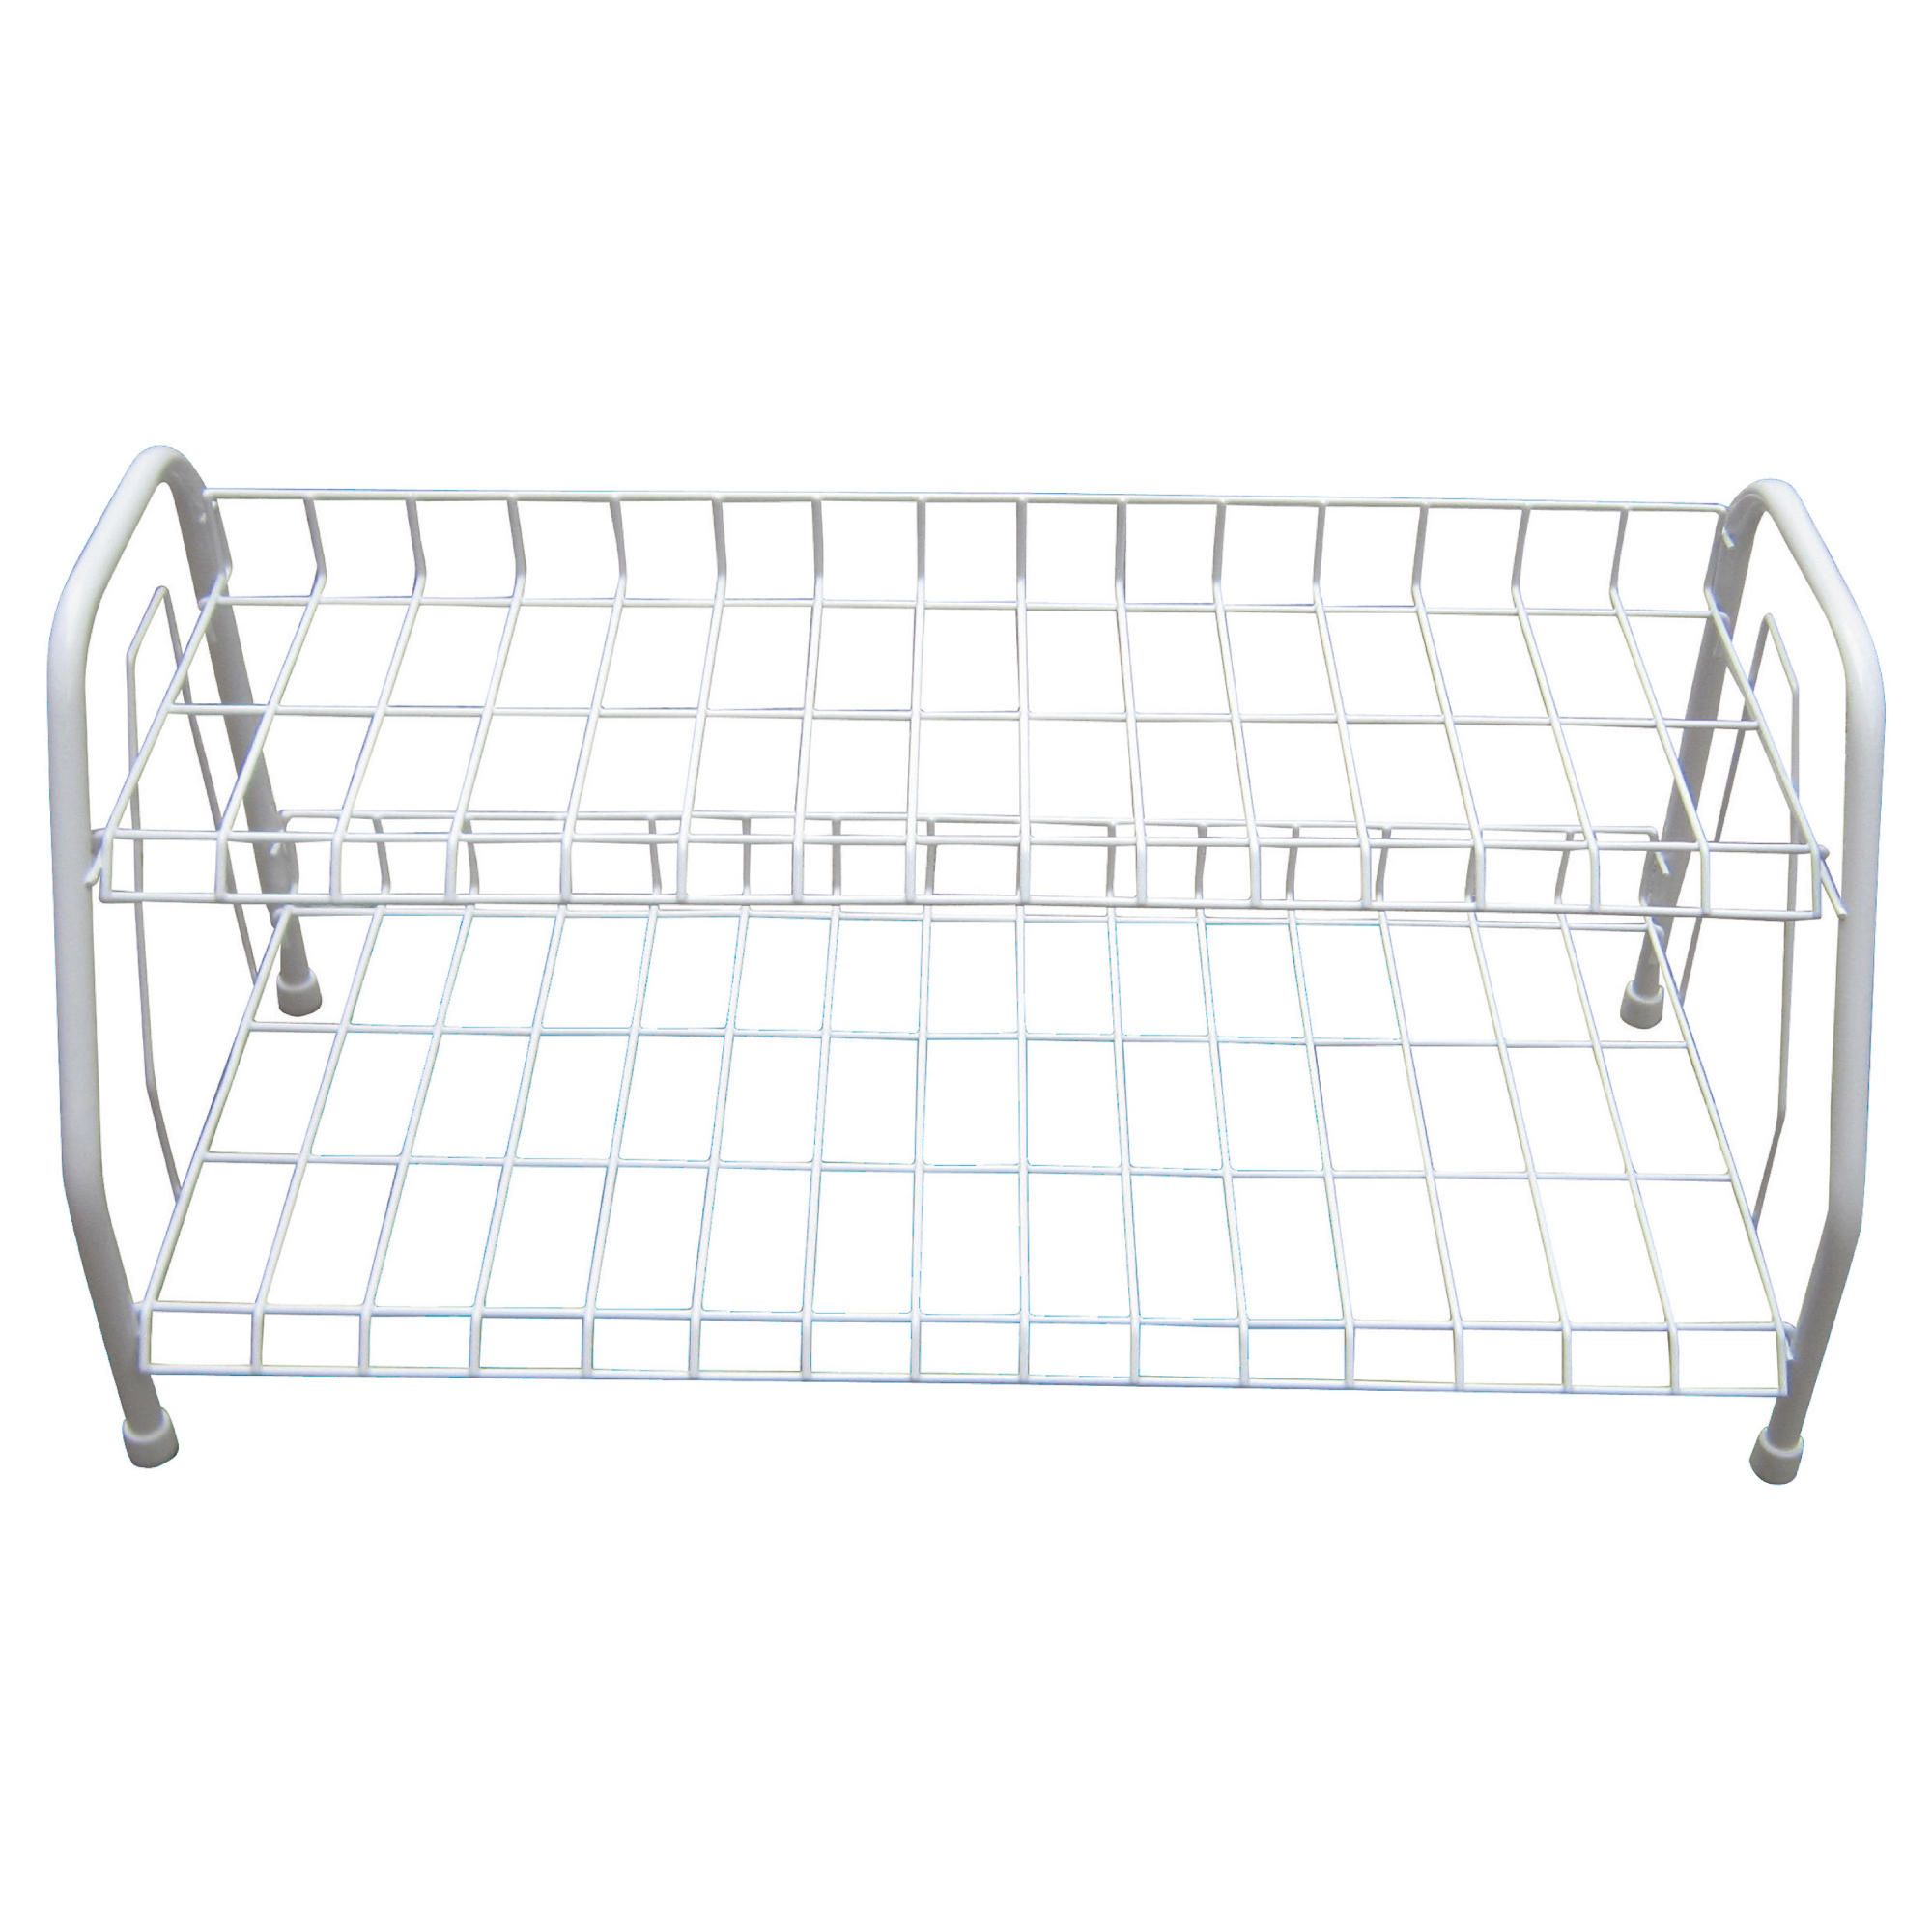 Tesco 2 Tier shoe rack White